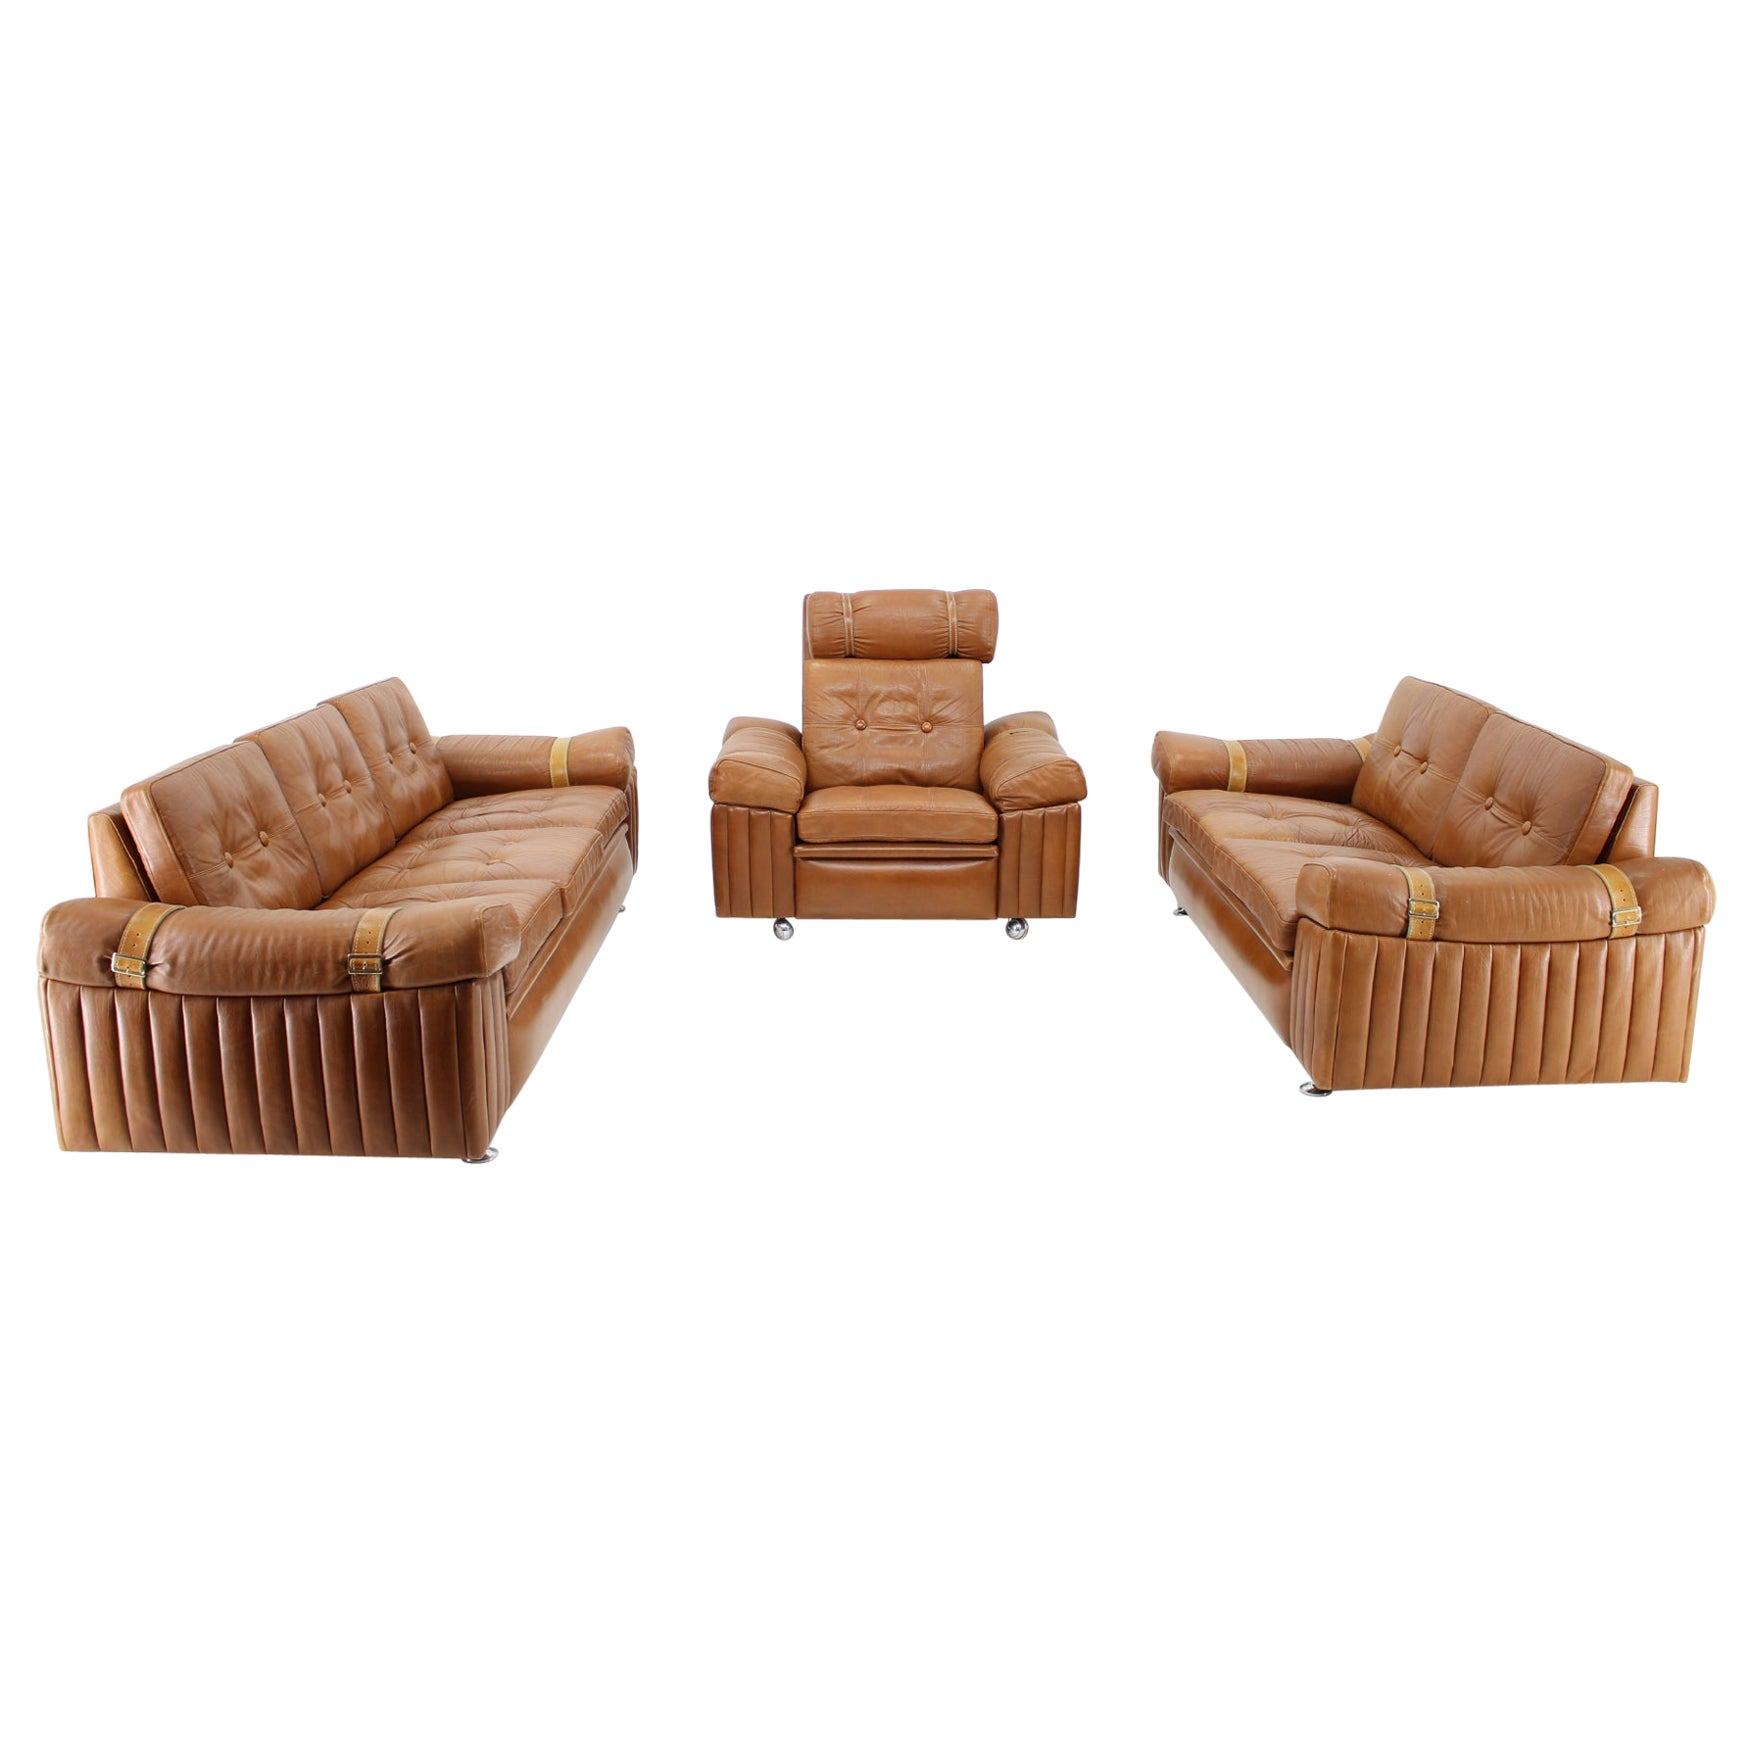 1970s Living Room Set in Cognac Leather